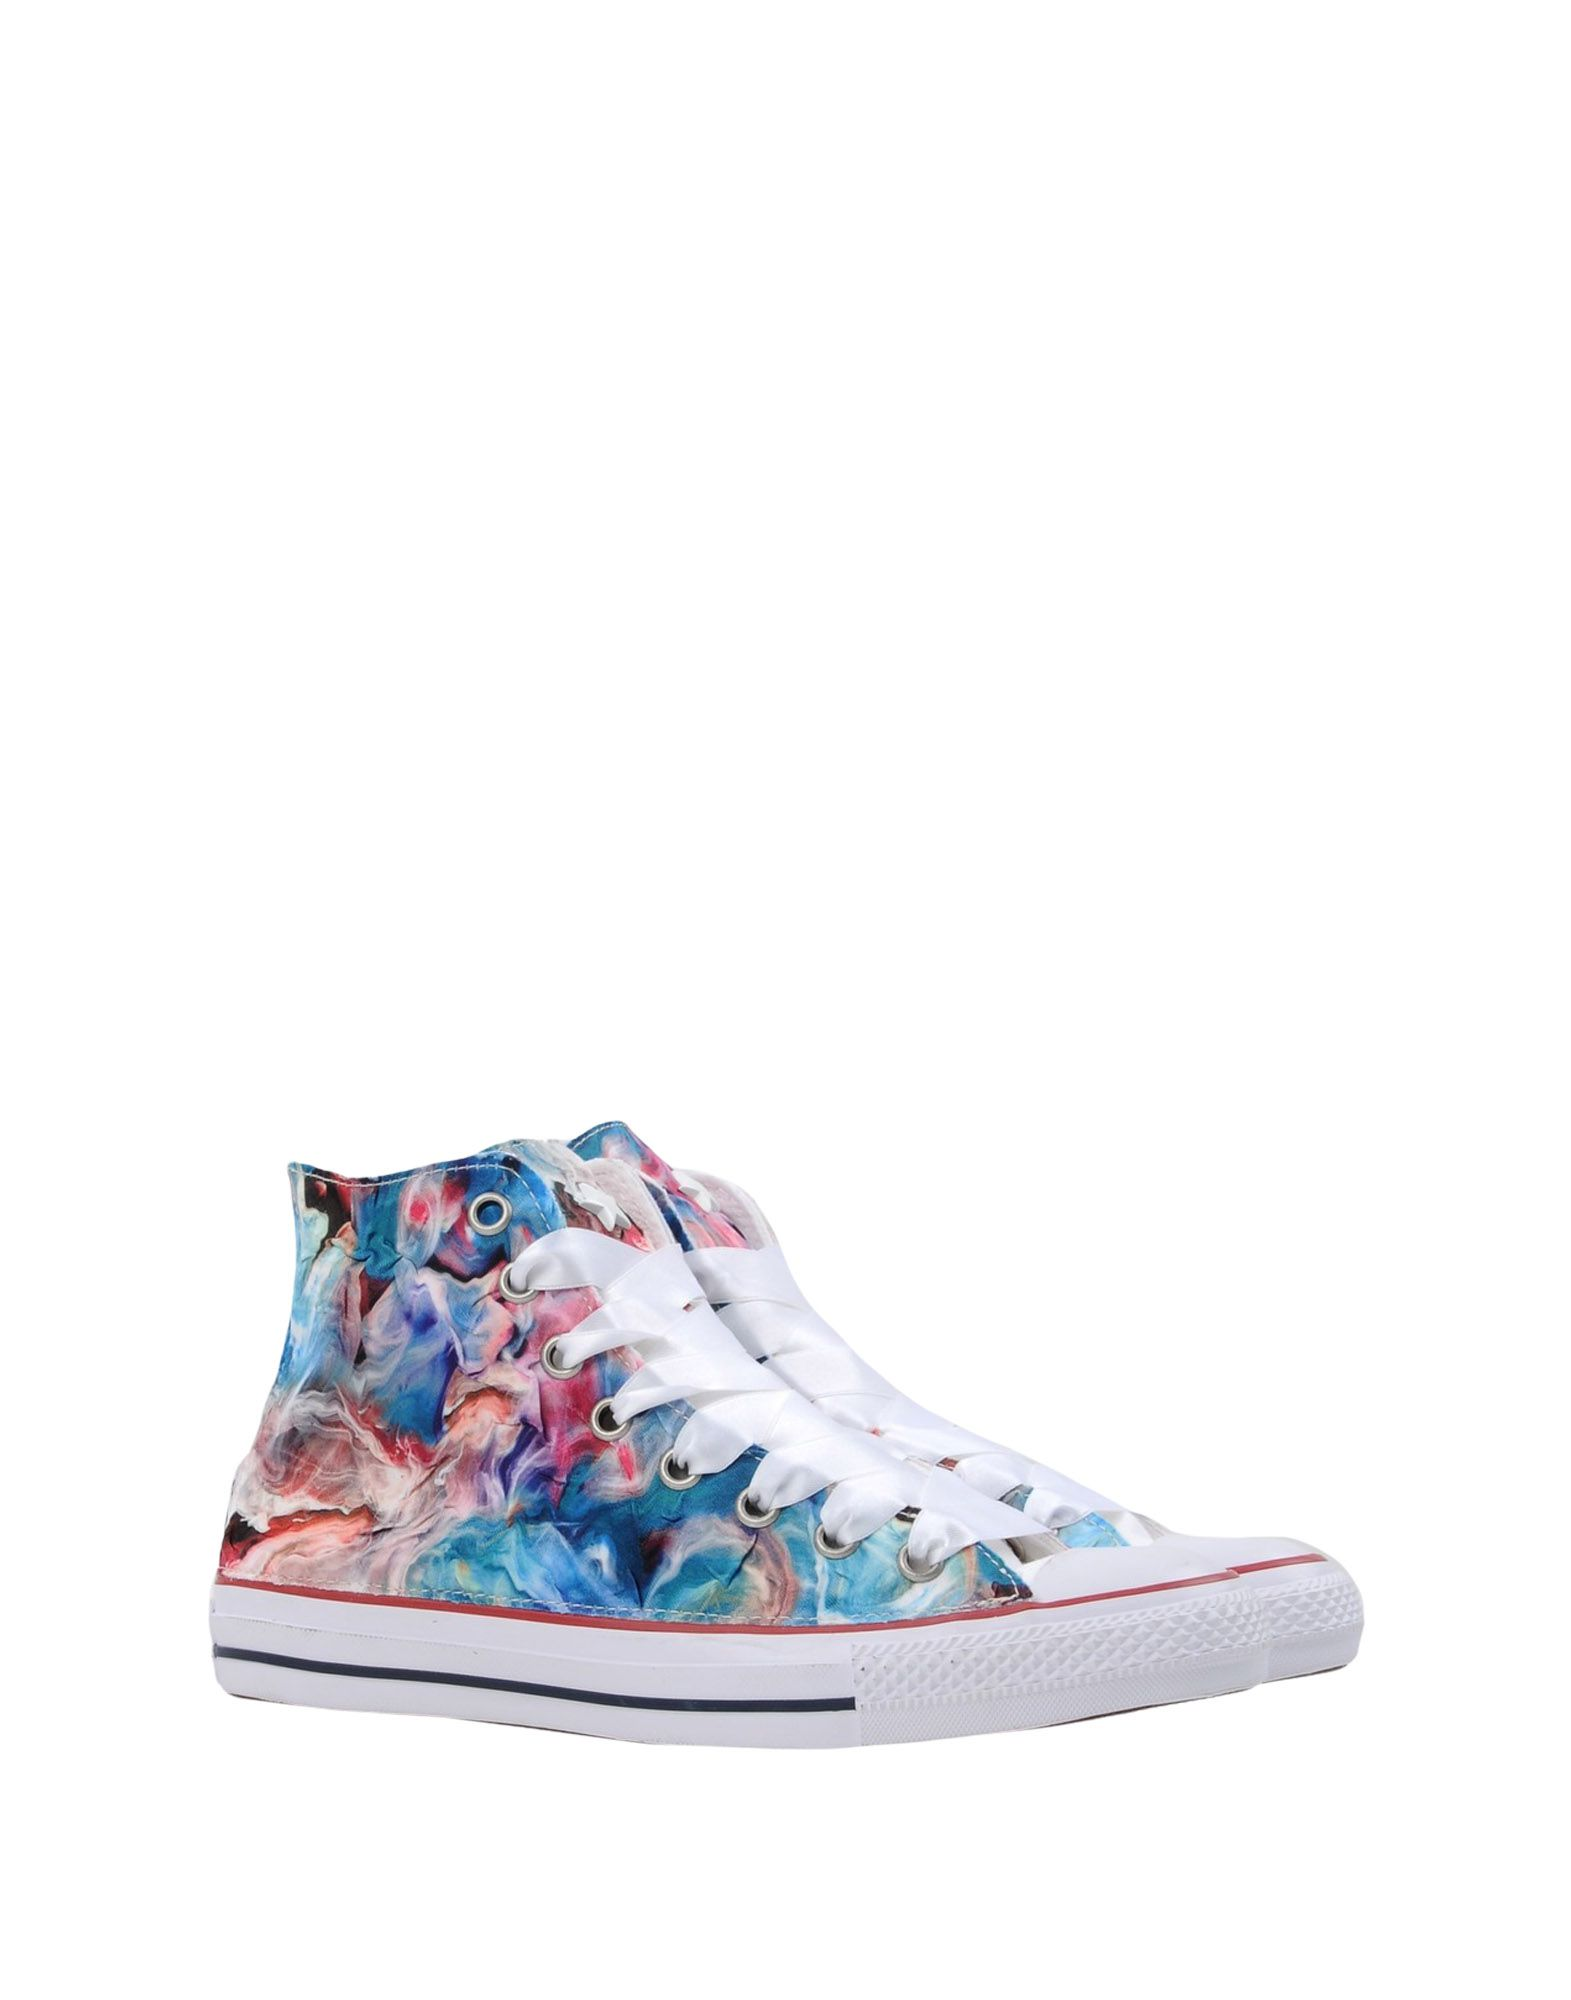 Stilvolle billige Schuhe Converse Limited Ltd Edition Ctas Hi Canvas/Textile Ltd Limited  11273156KH 273390